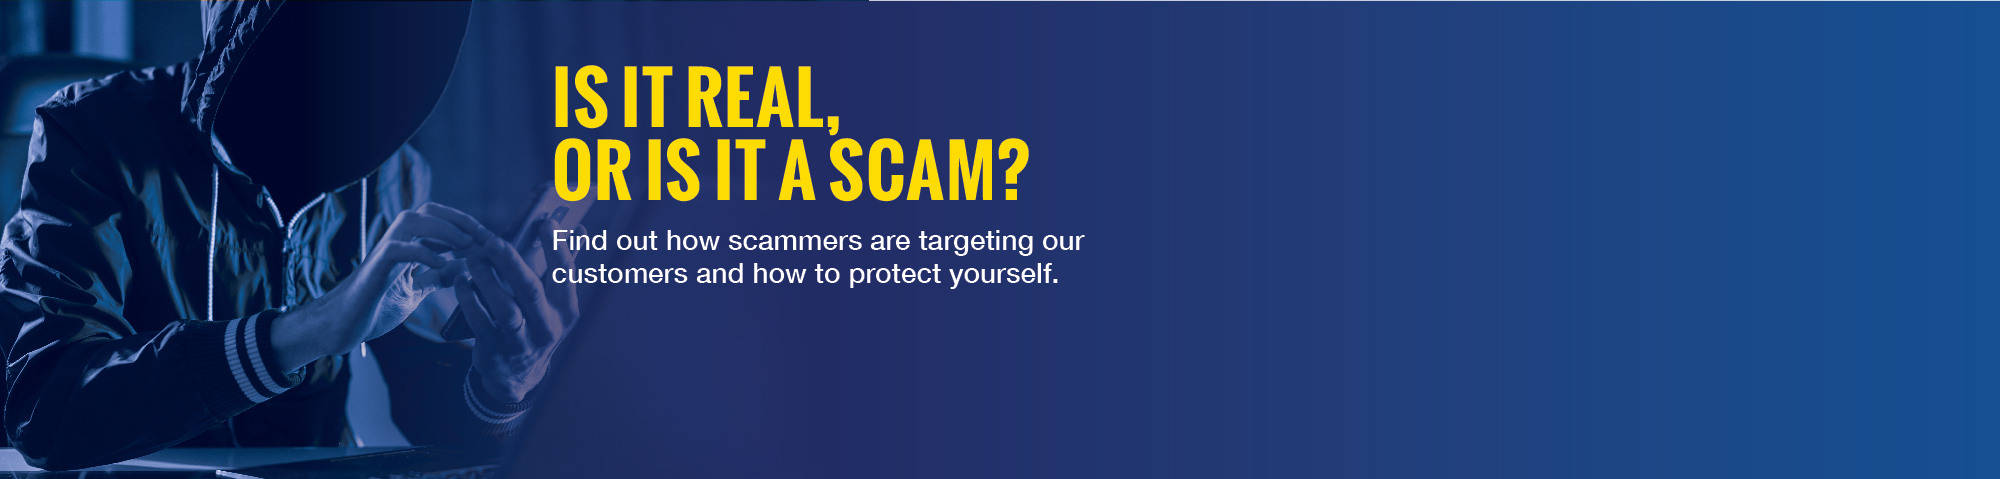 "Dark image of a person wearing a hoodie talking on the phone. Copy says ""Is it real, or is it a scam?"" Find out how scammers are targeting our customers and how to protect yourself."